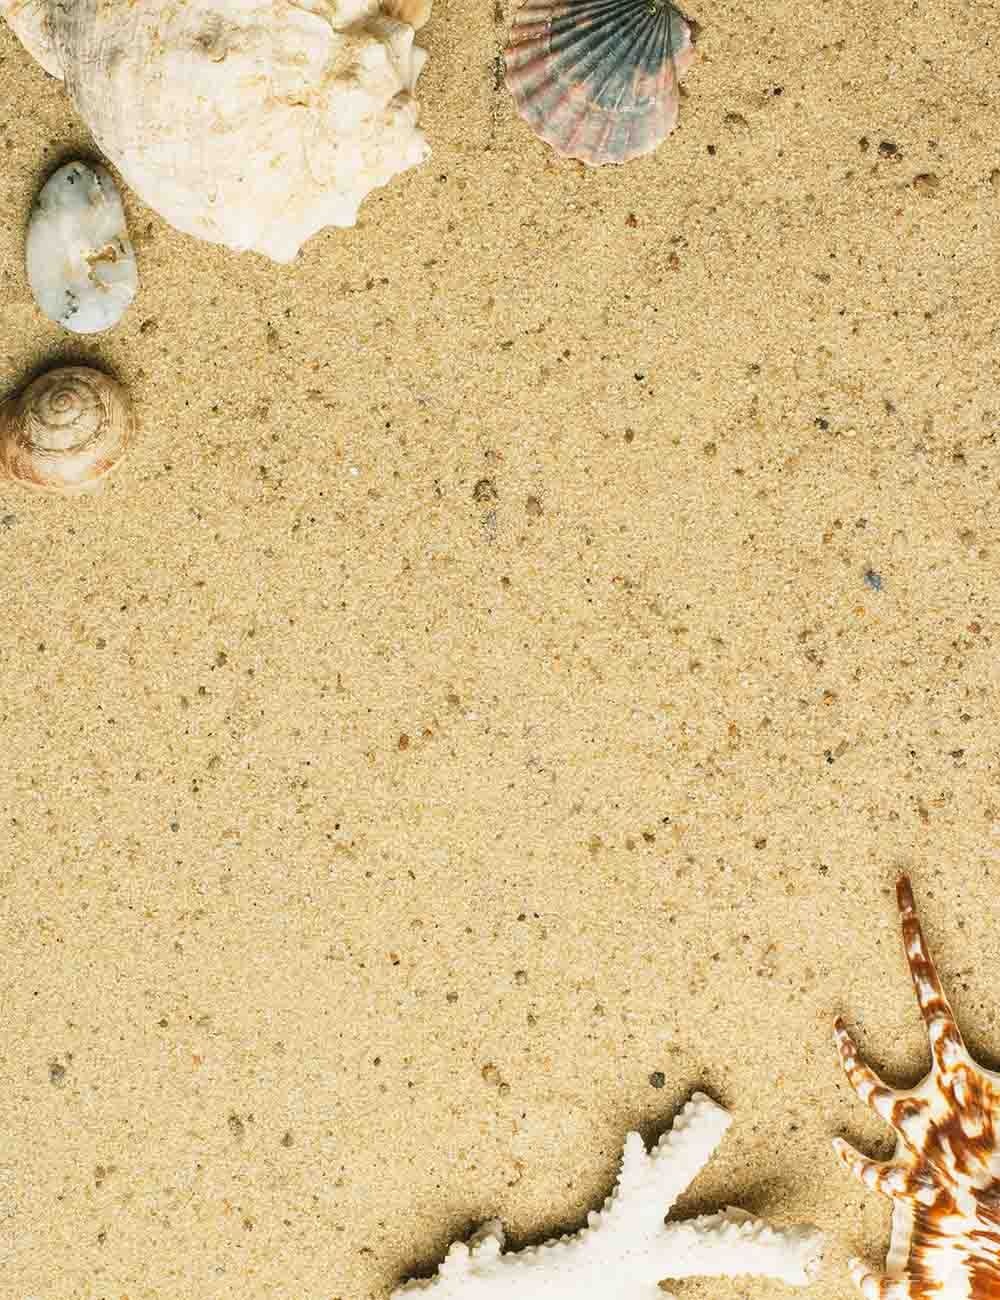 Conch Seashell On Beach For Baby Holiday Photography Backdrop - Shop Backdrop